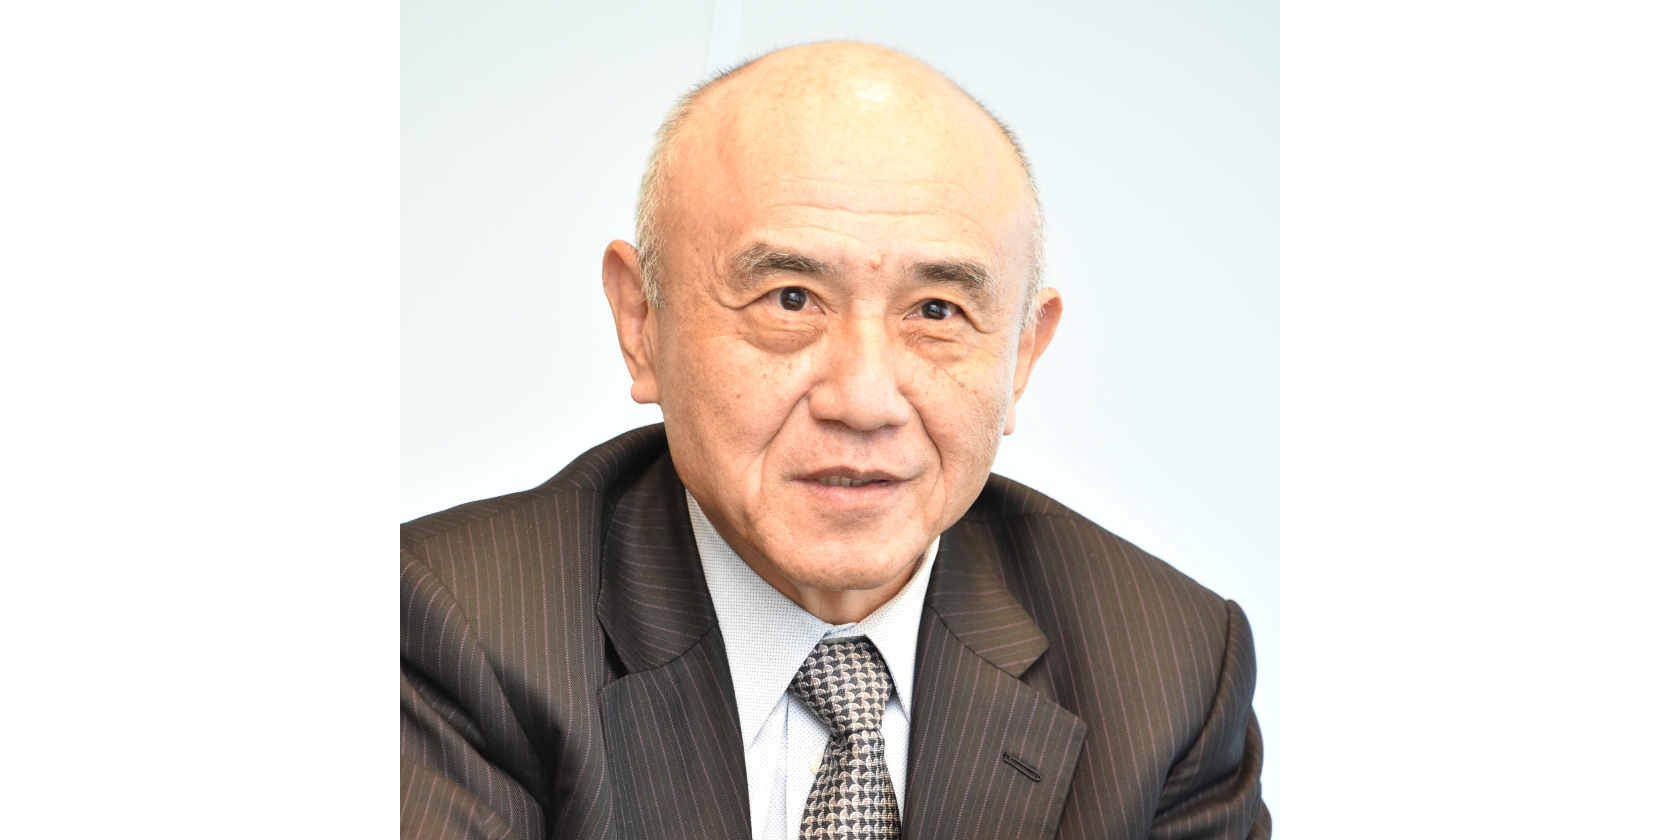 Interview: Mitsubishi Chemical Holdings President Talks Recent Performance, Aims